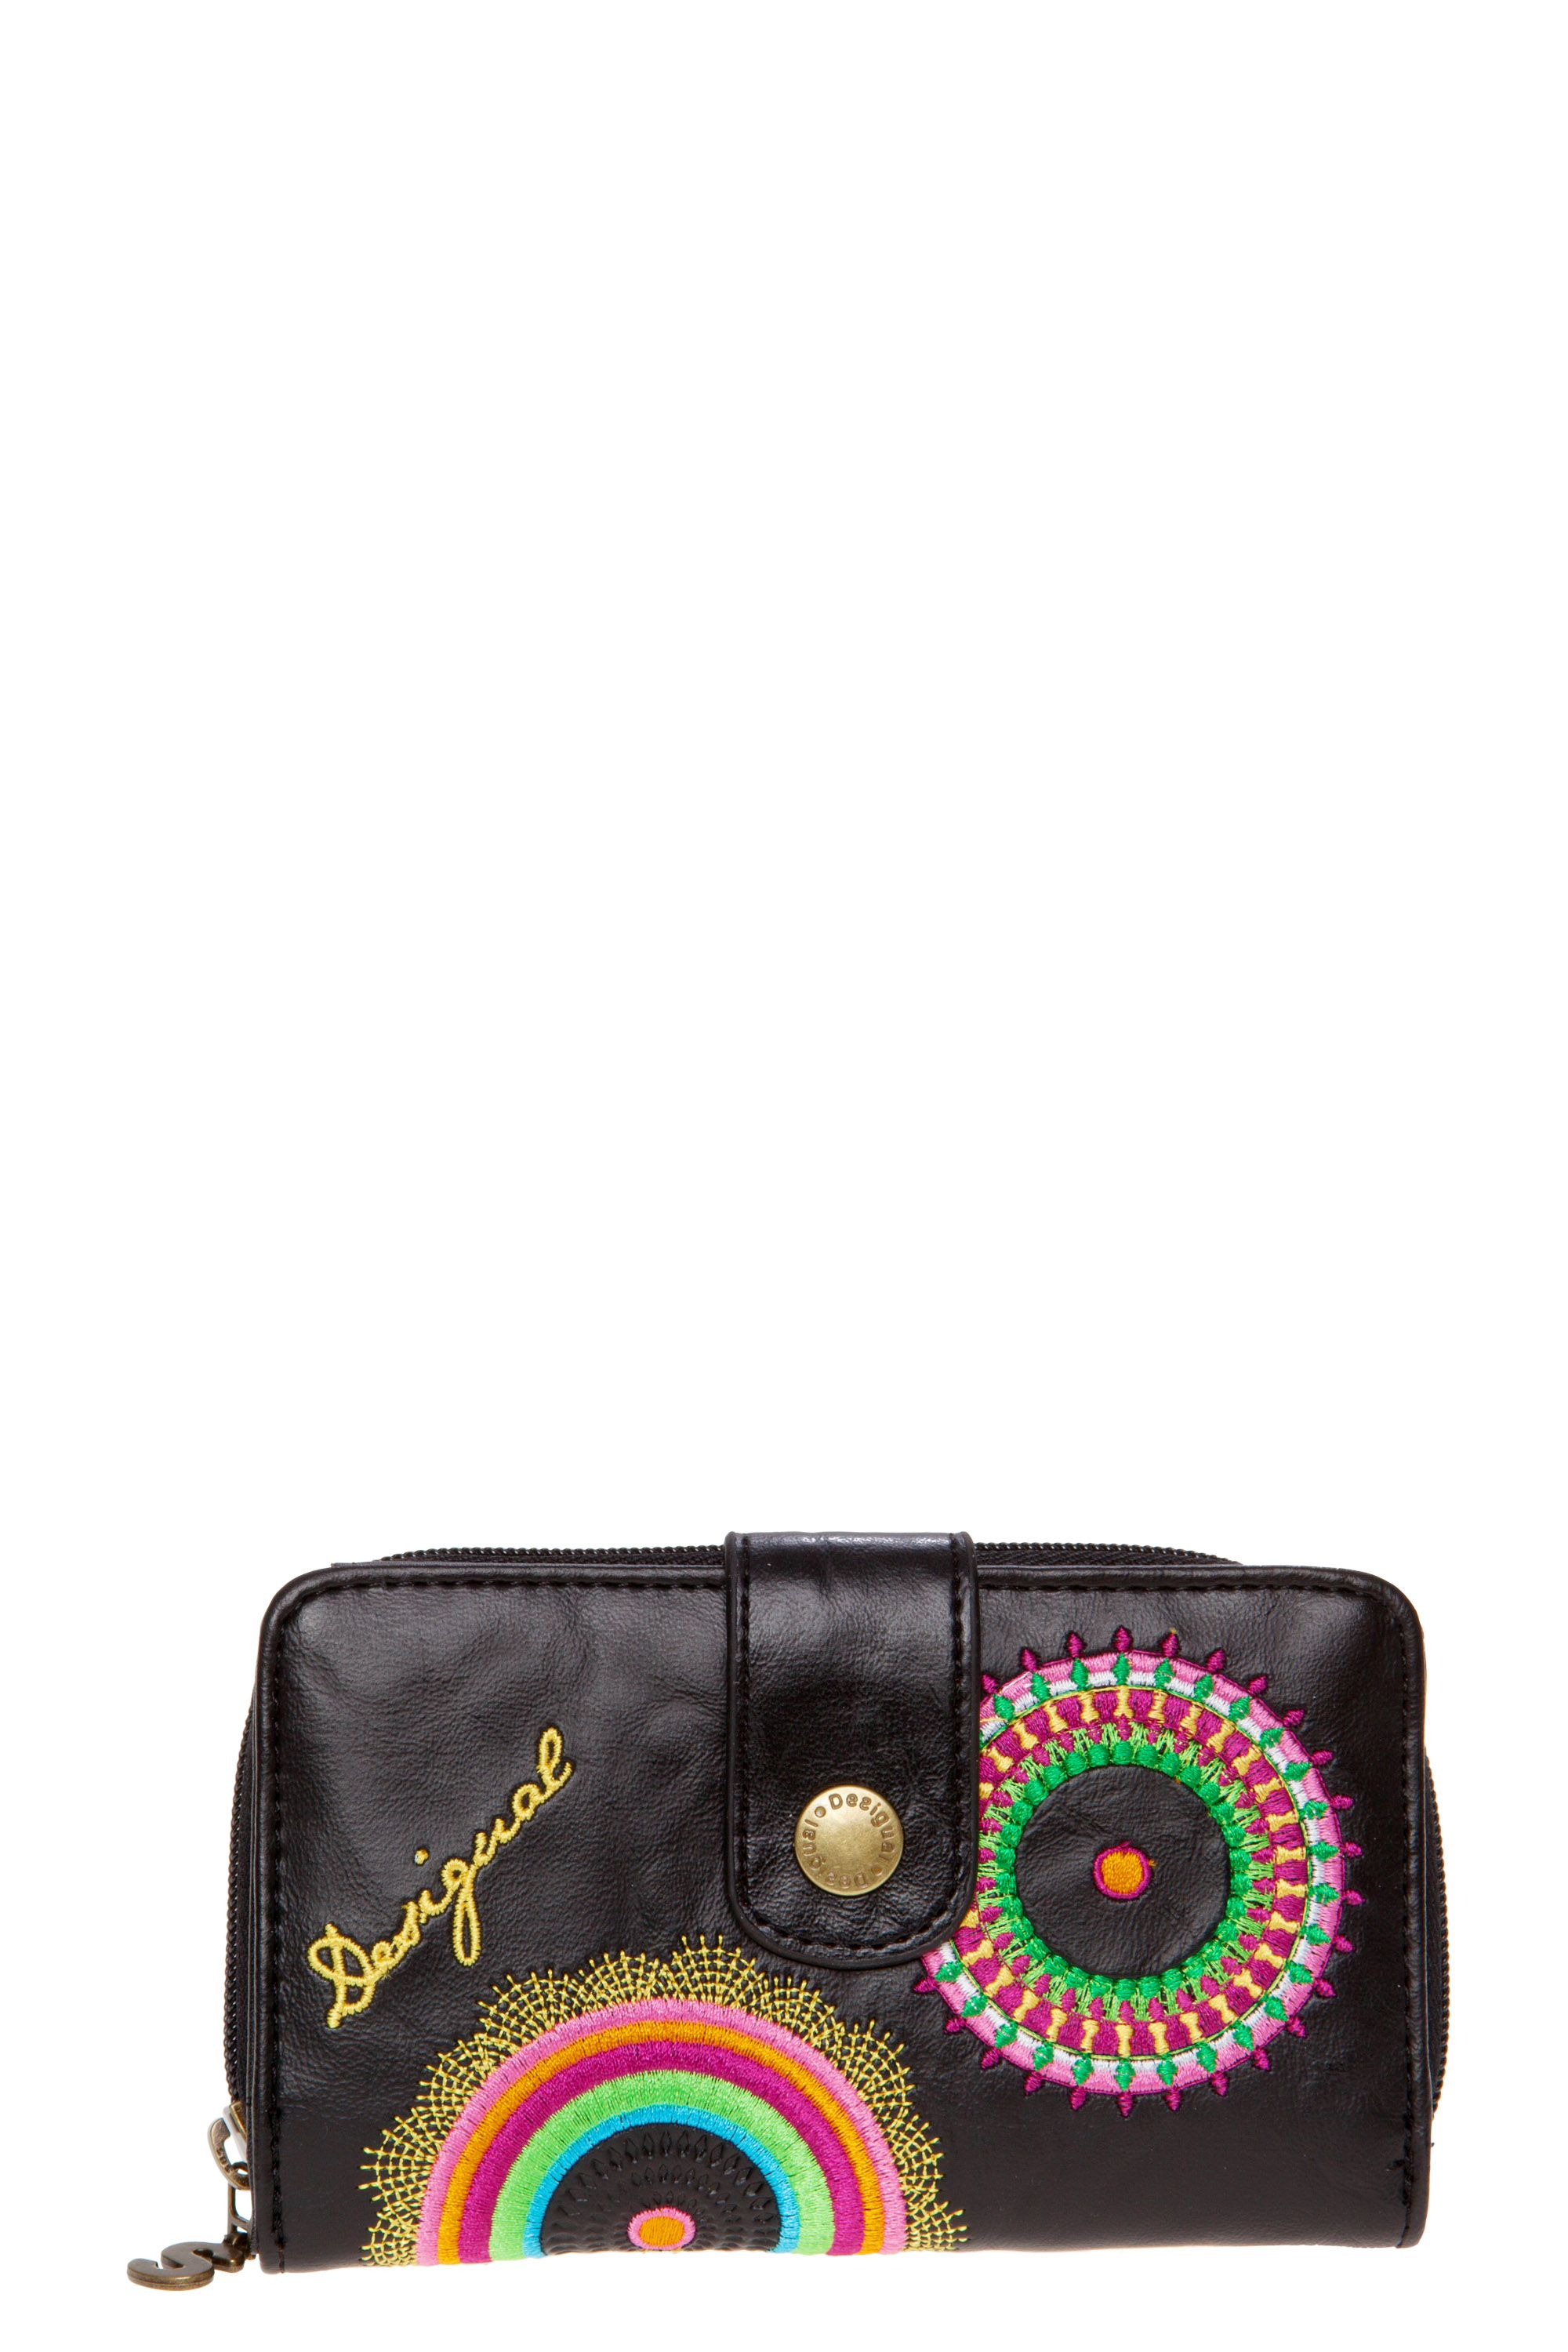 Audrey button snap purse